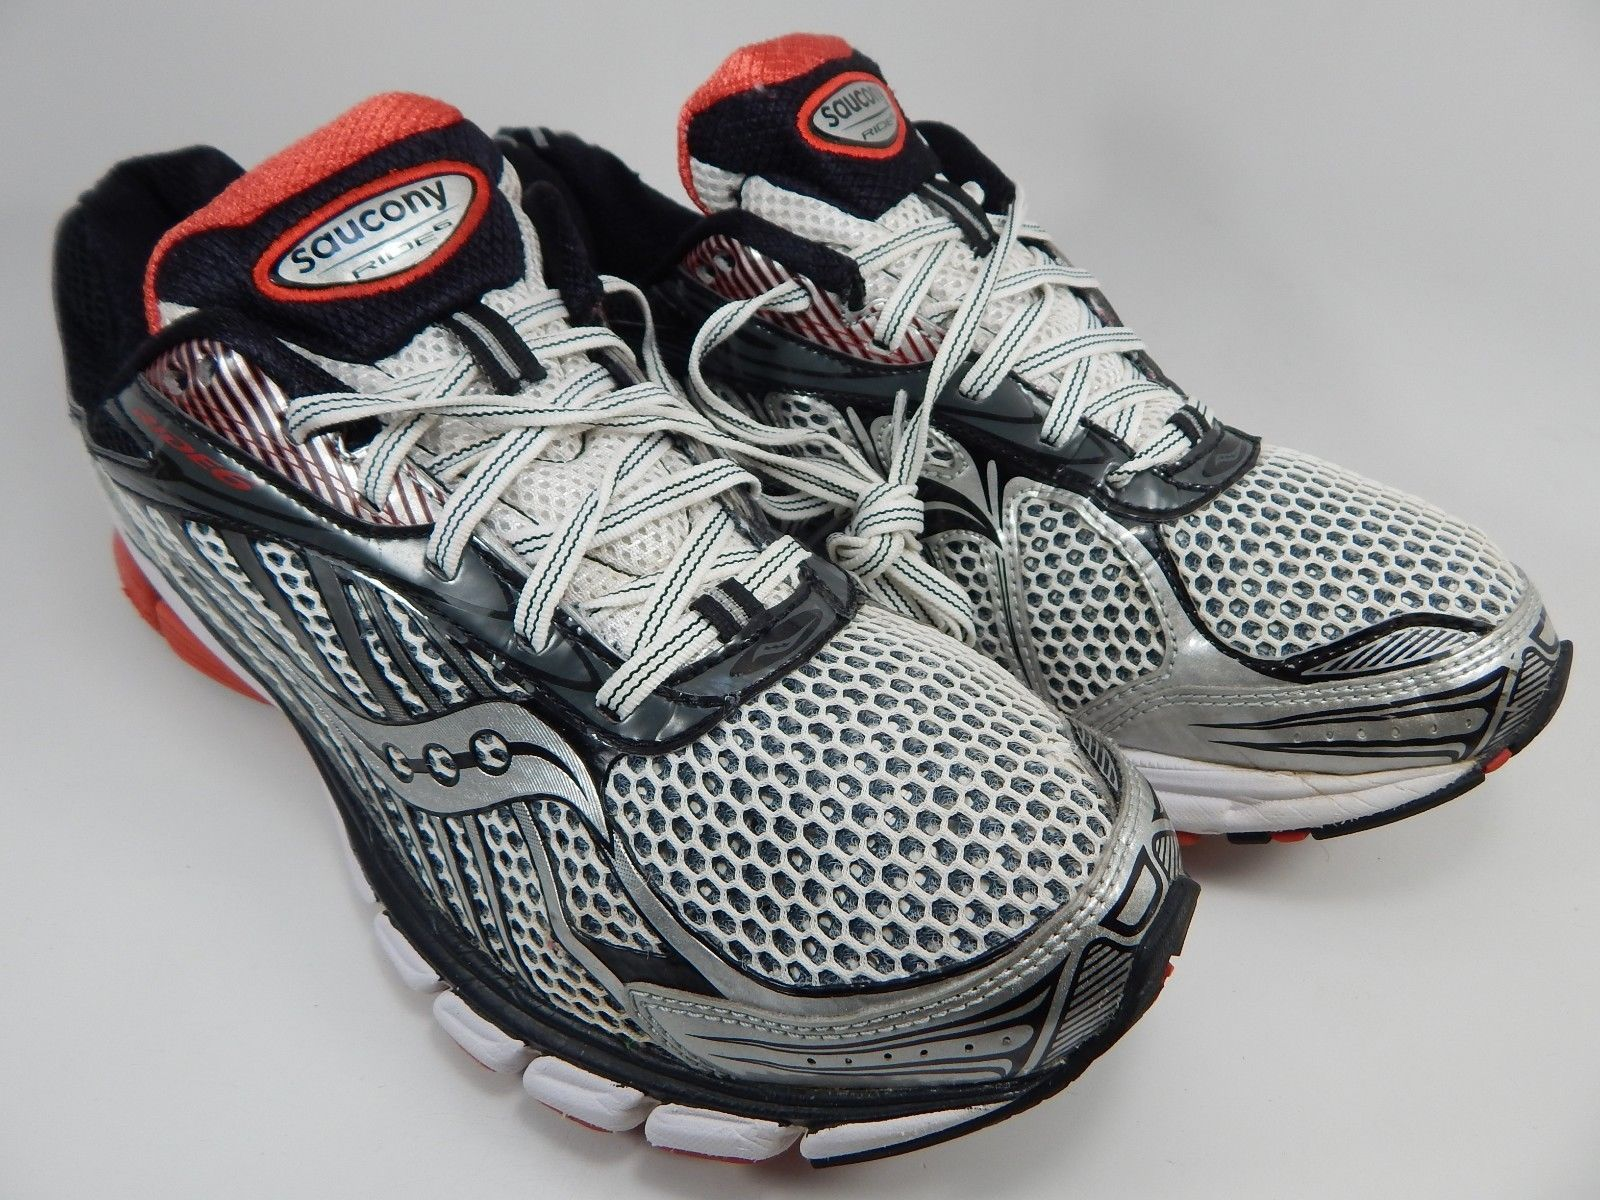 Saucony Ride 6 Running Shoes Men's Size US 12.5 M (D) EU 47 White Red S20200-1